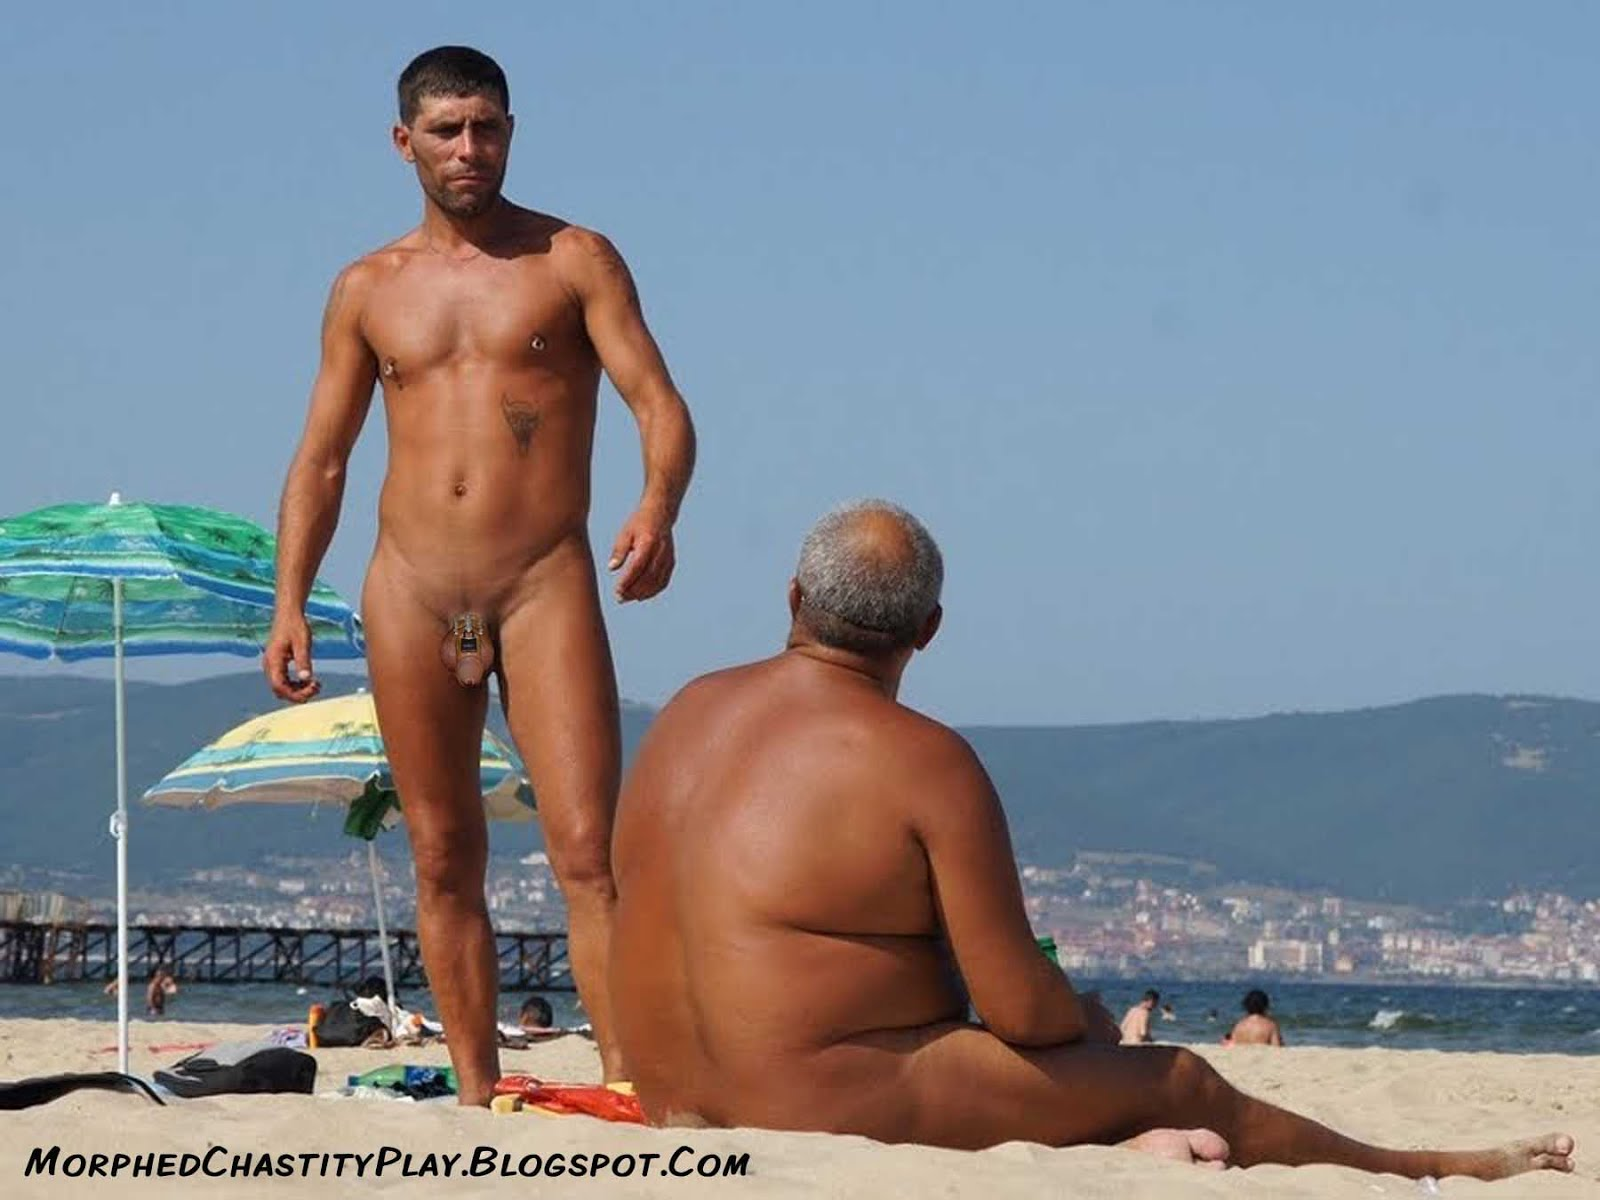 Male Chastity Beach